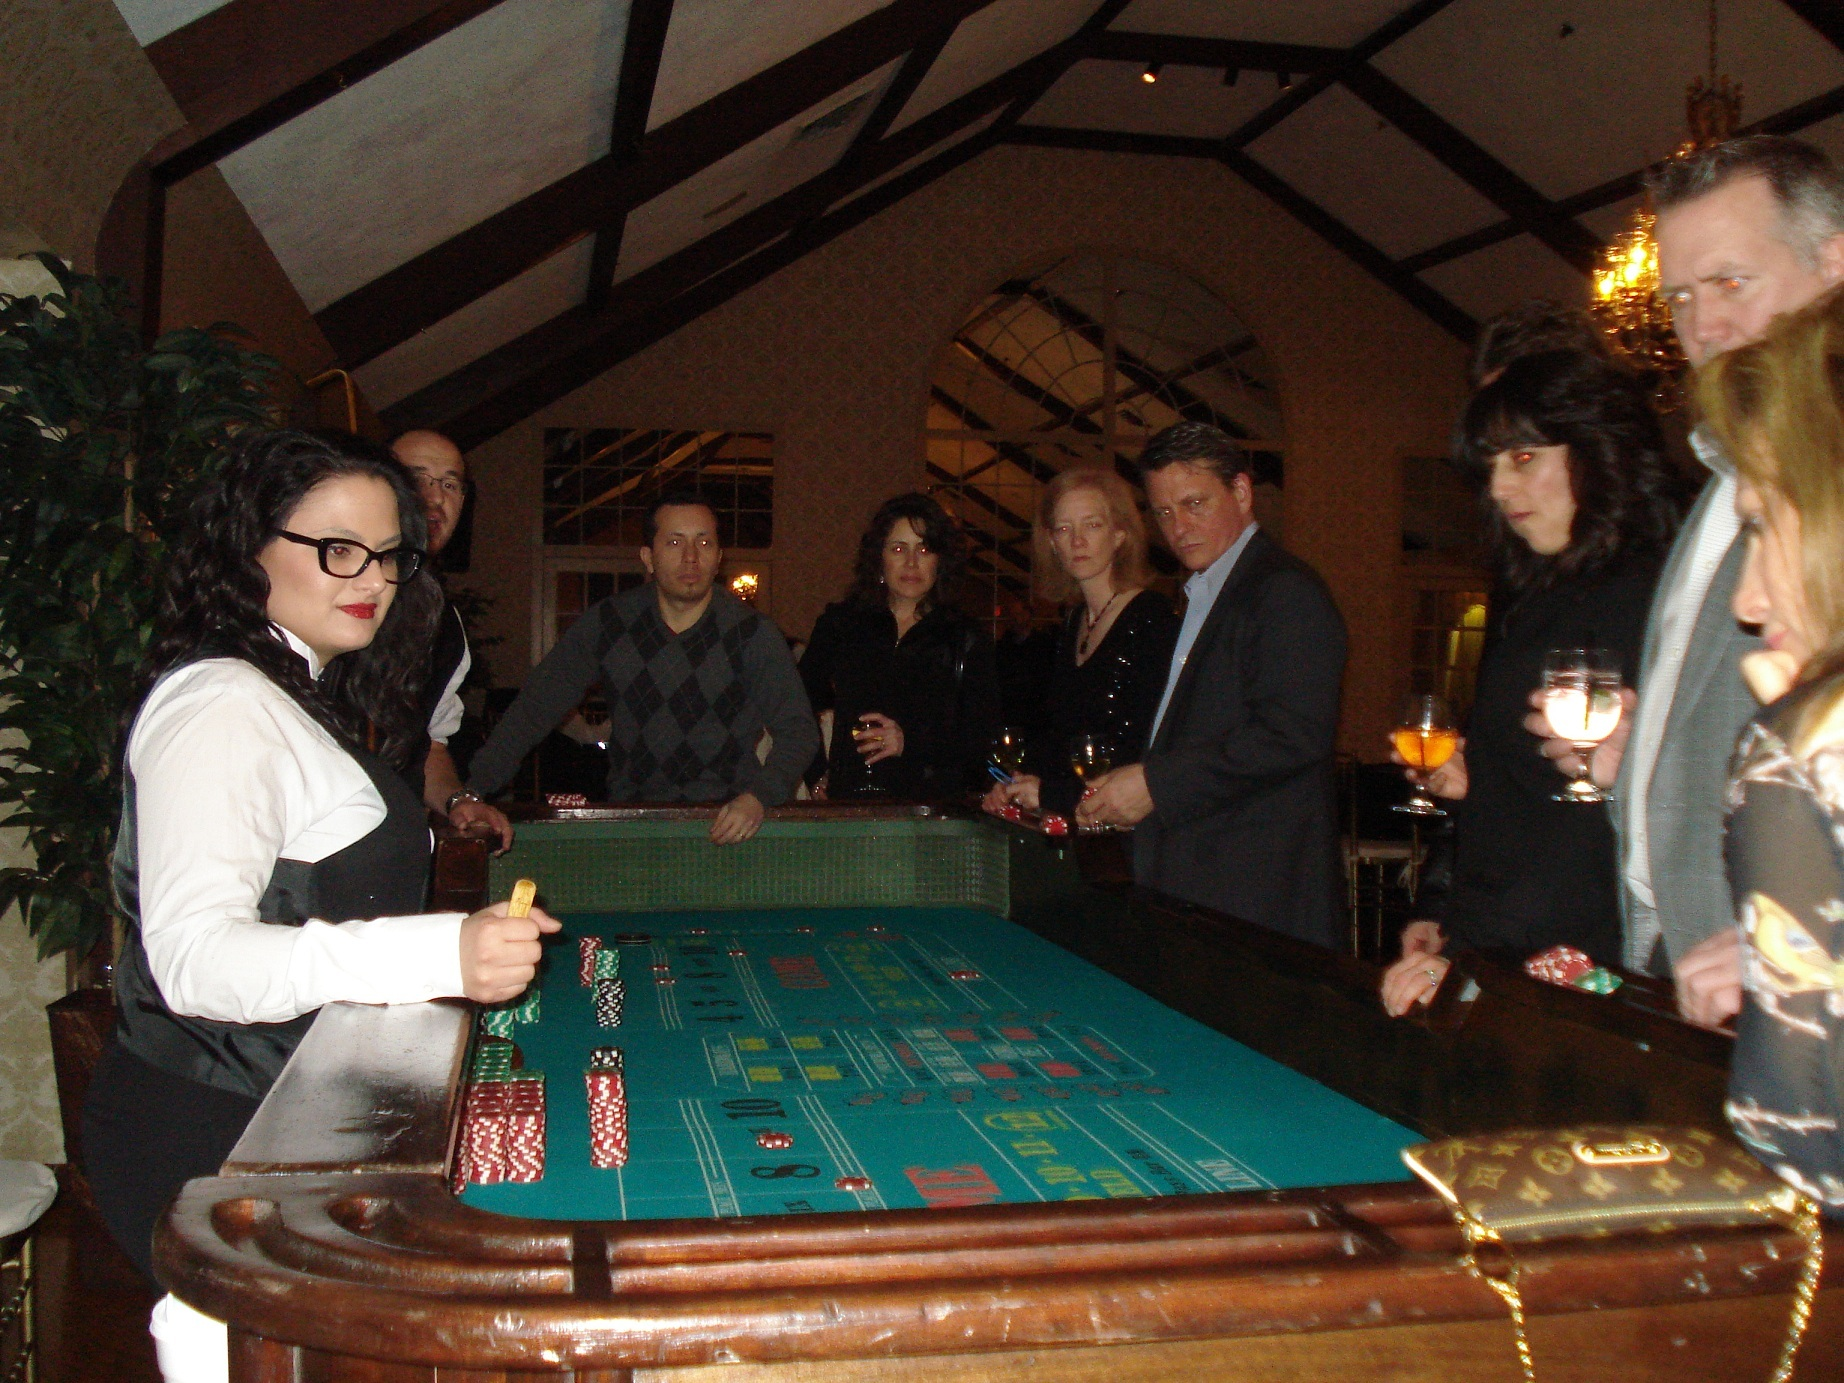 e4d40994621c2fd7c4eb_Casino_Night_009.JPG